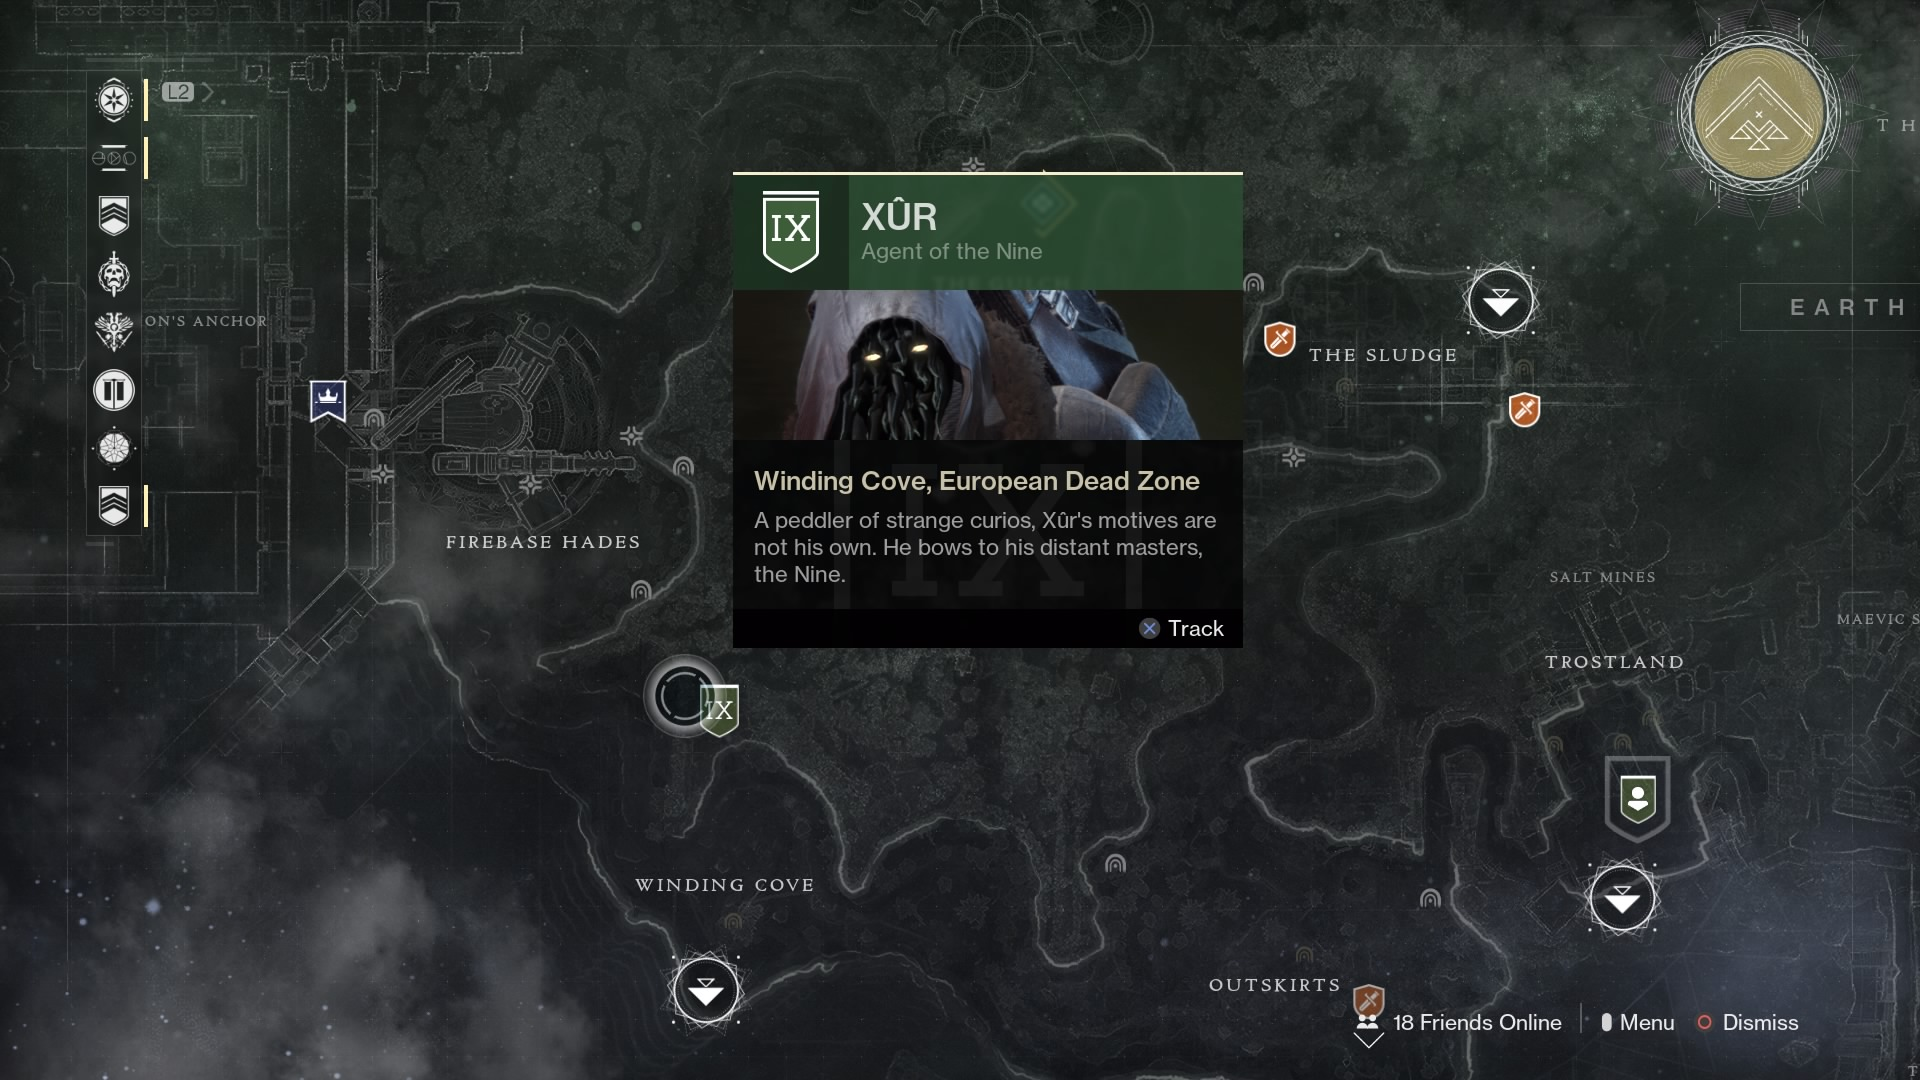 Destiny 2 Xur EDZ Map